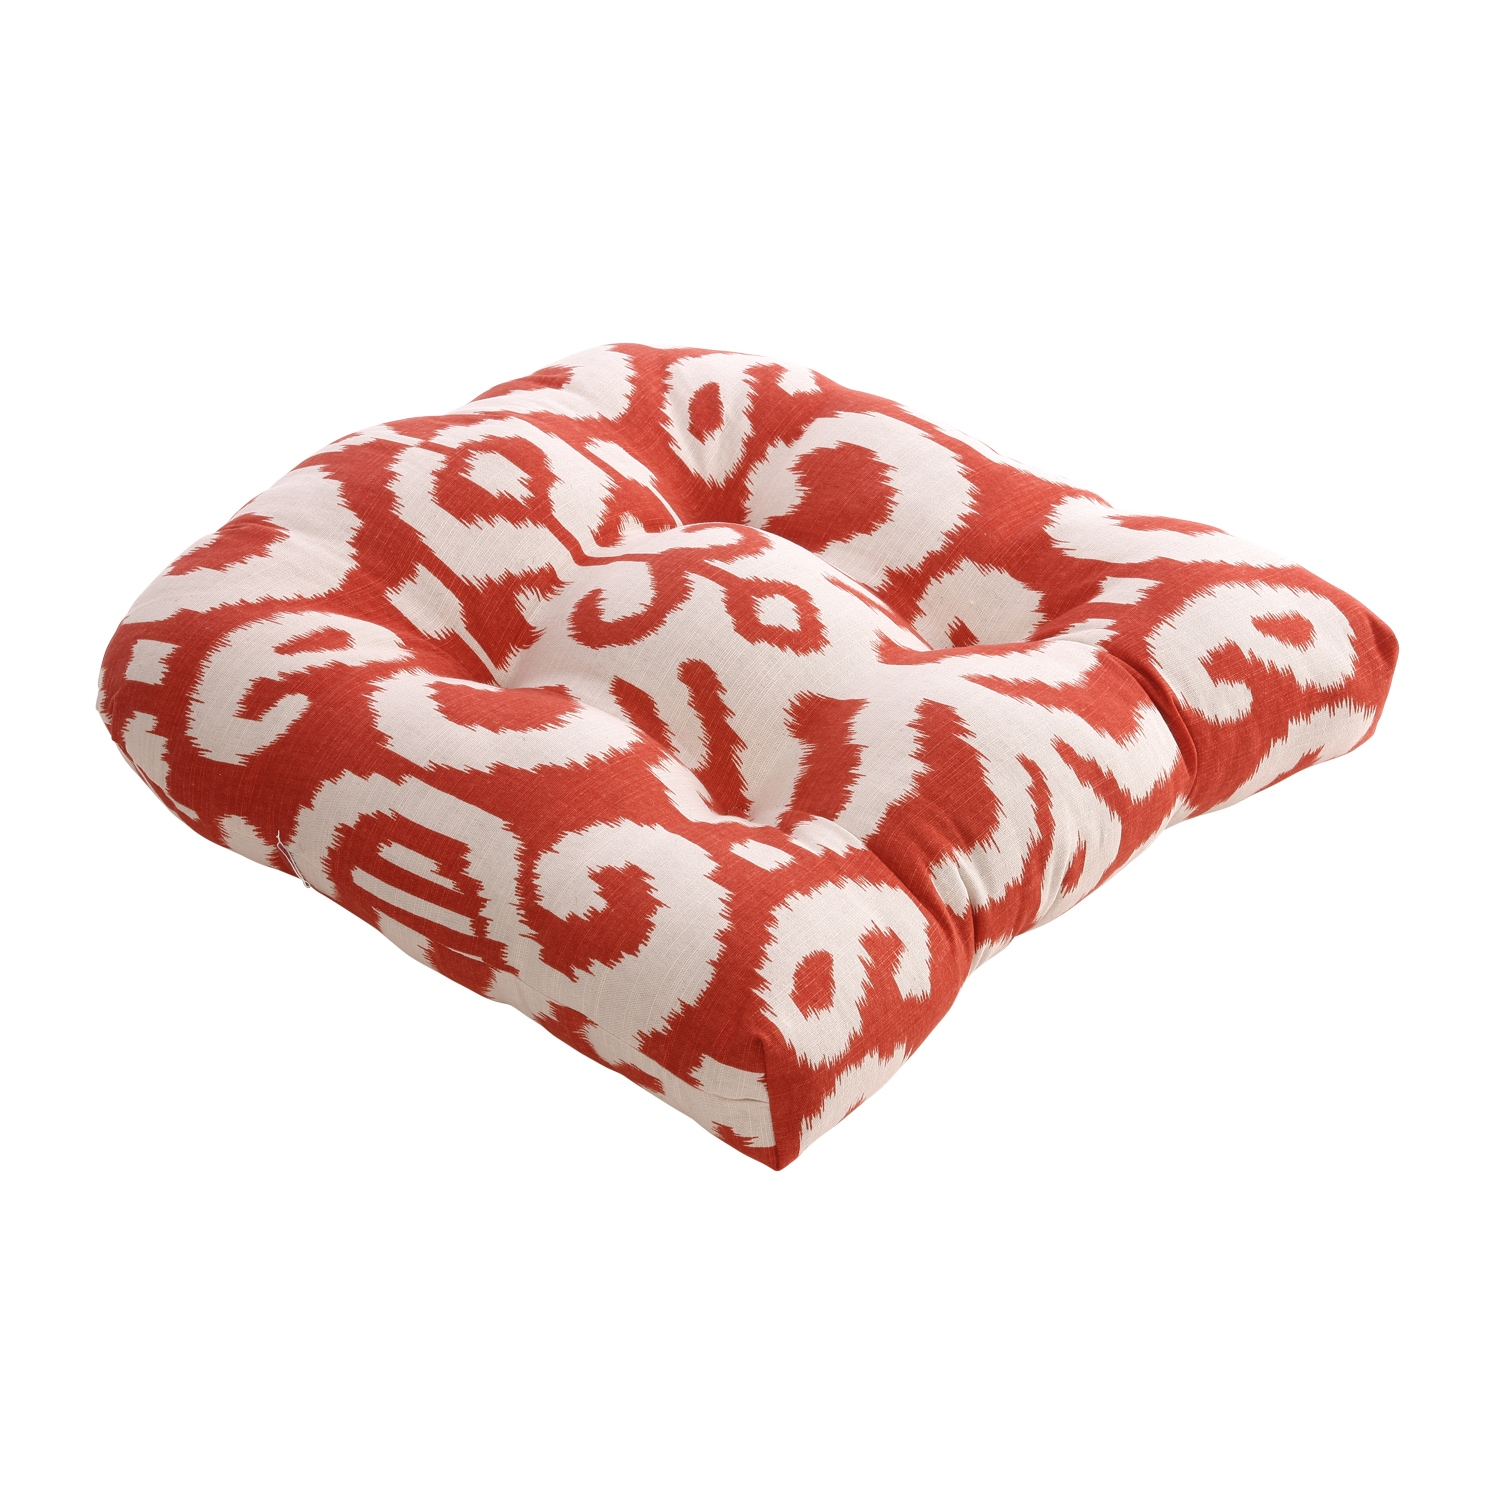 Fergano Chair Cushion in Flame